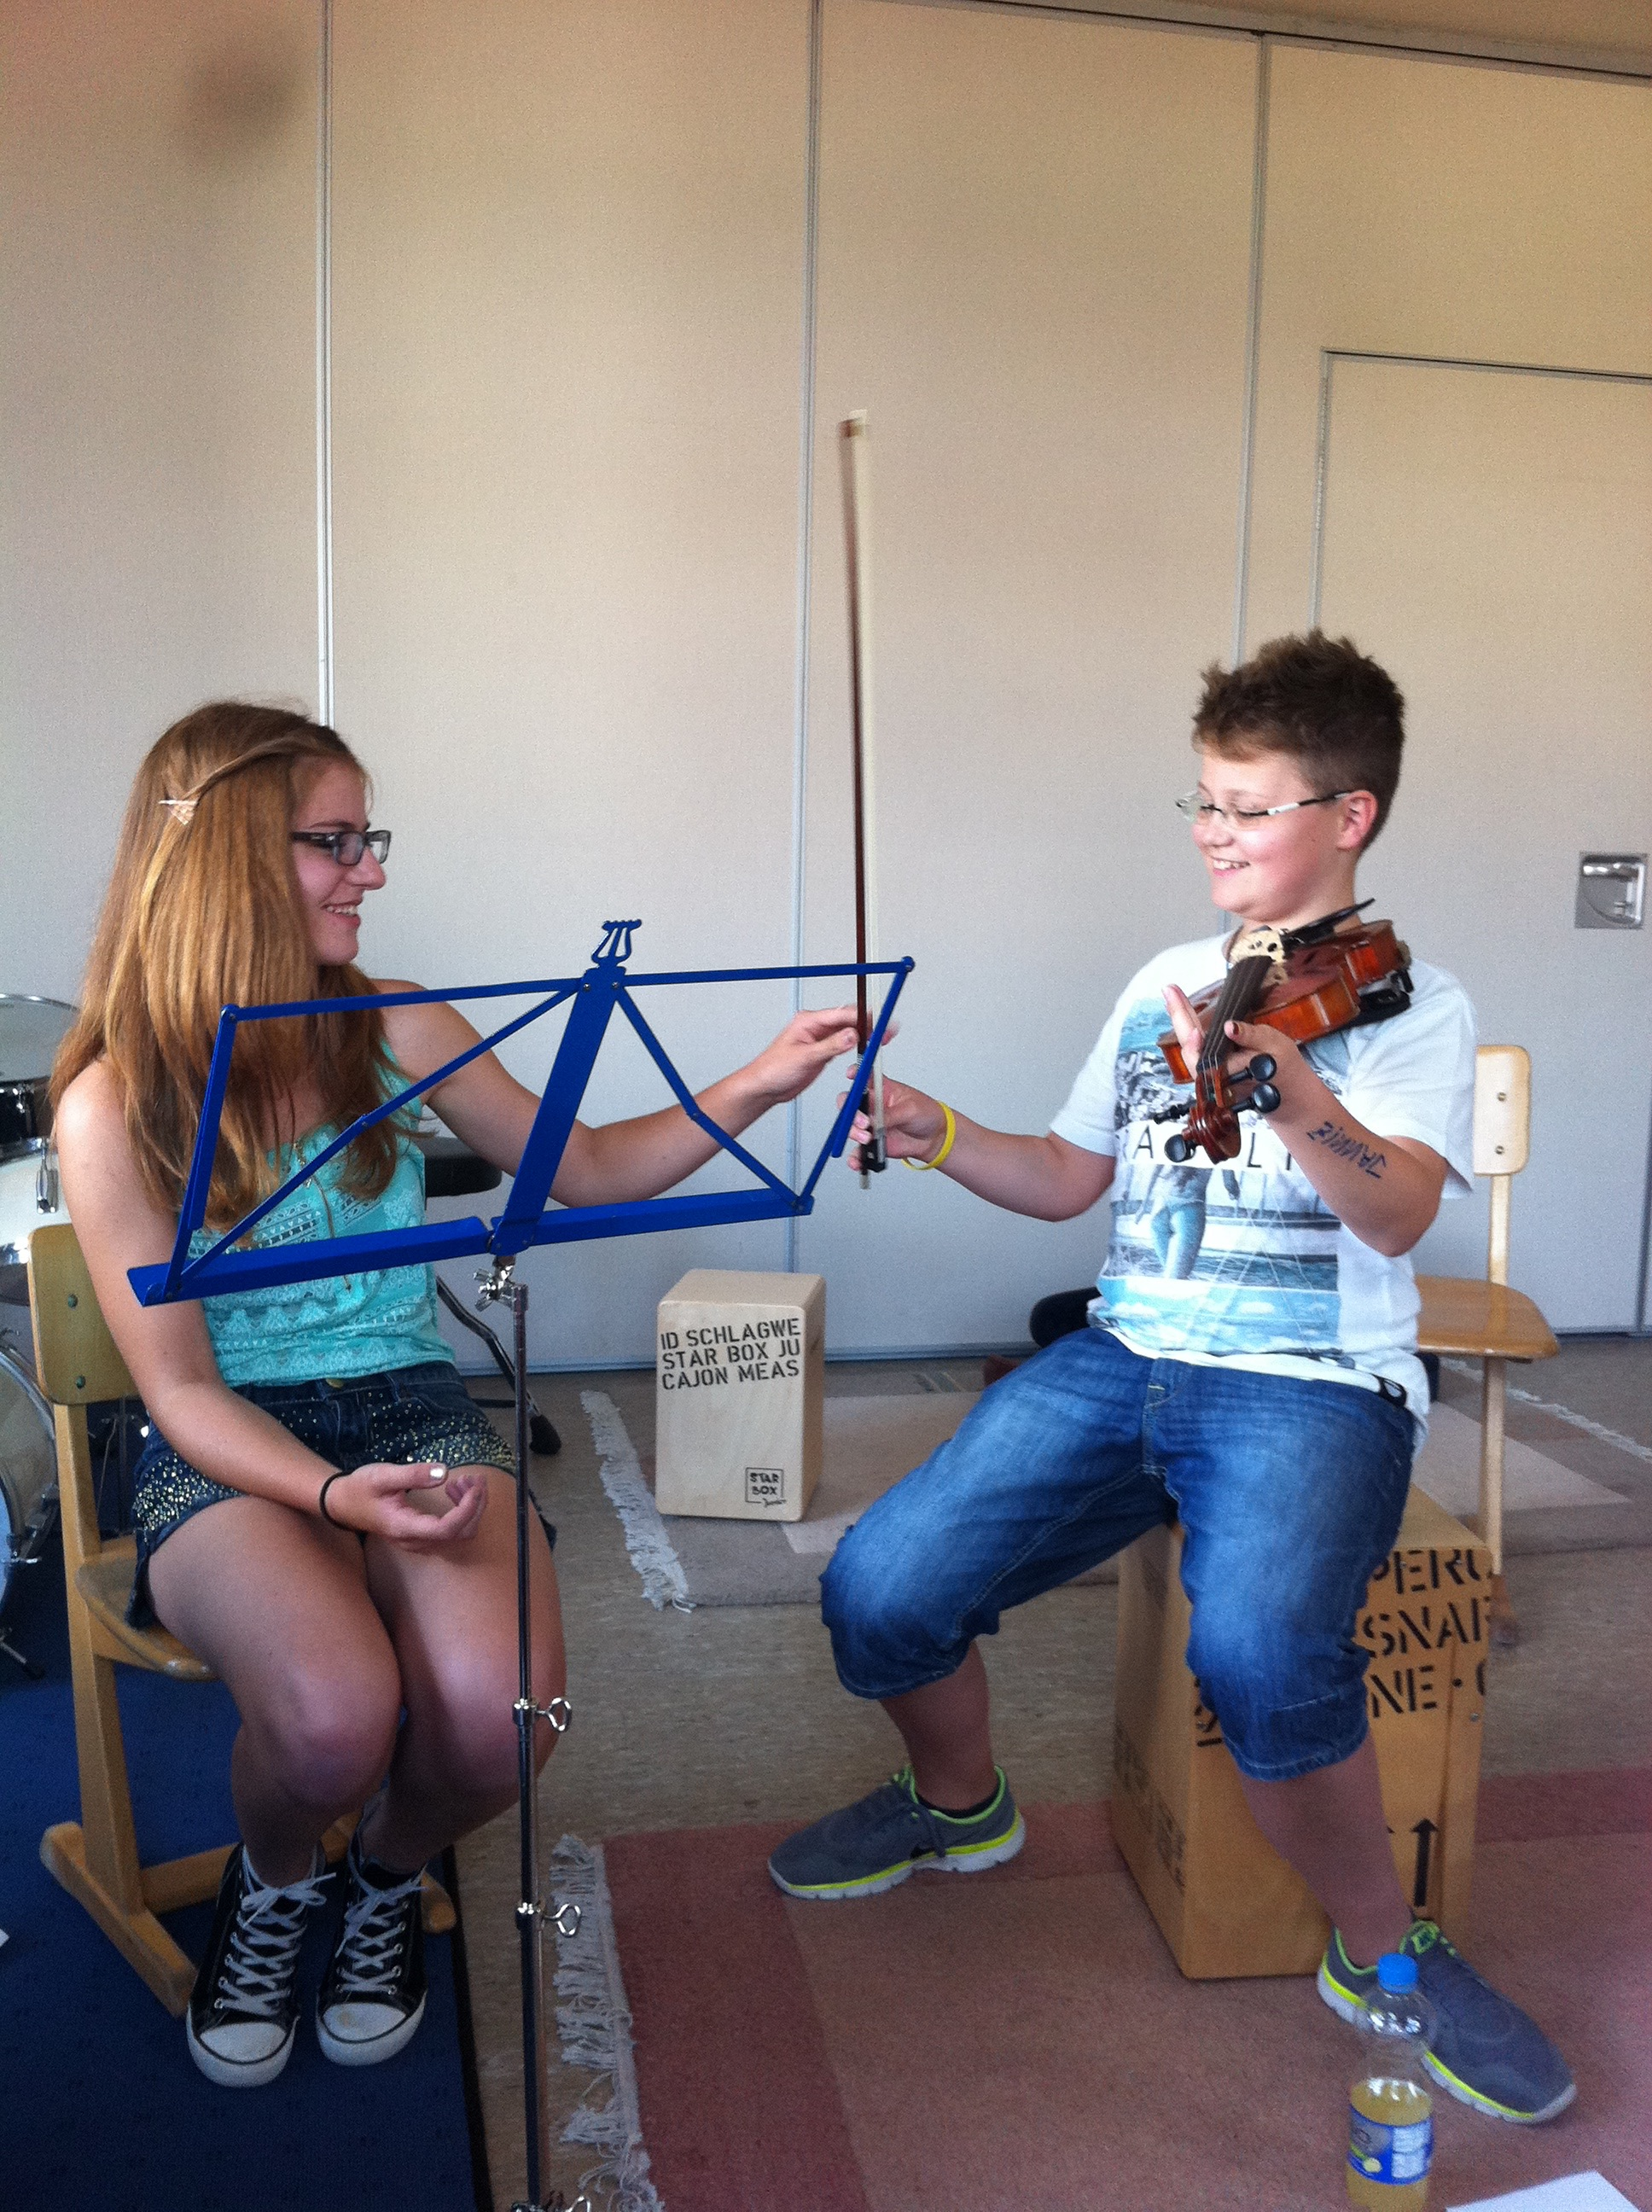 My students at the music school in Germany